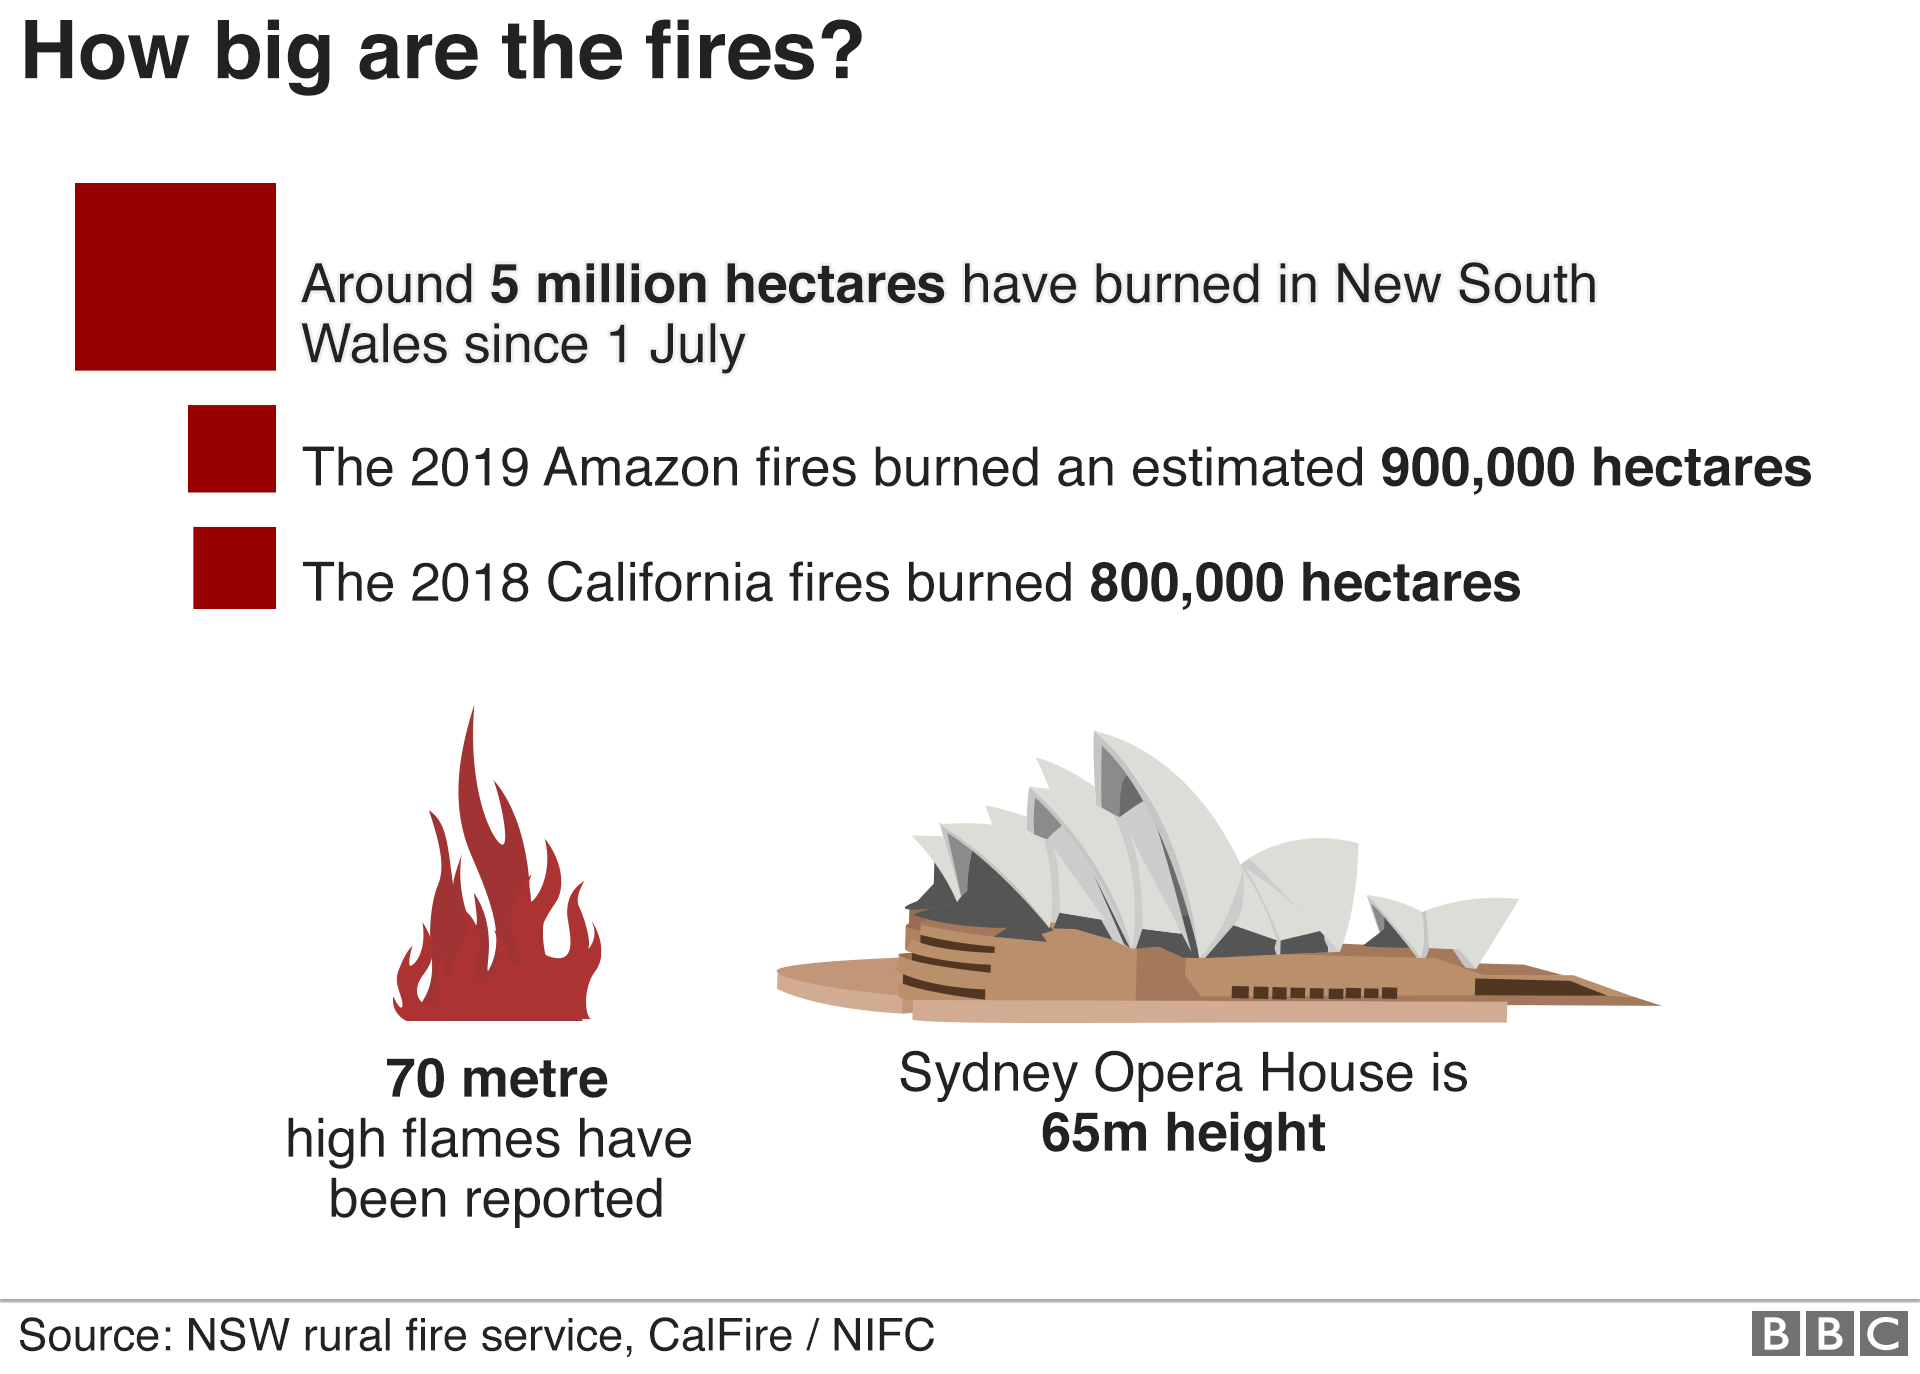 Graphic: How big are the fires?